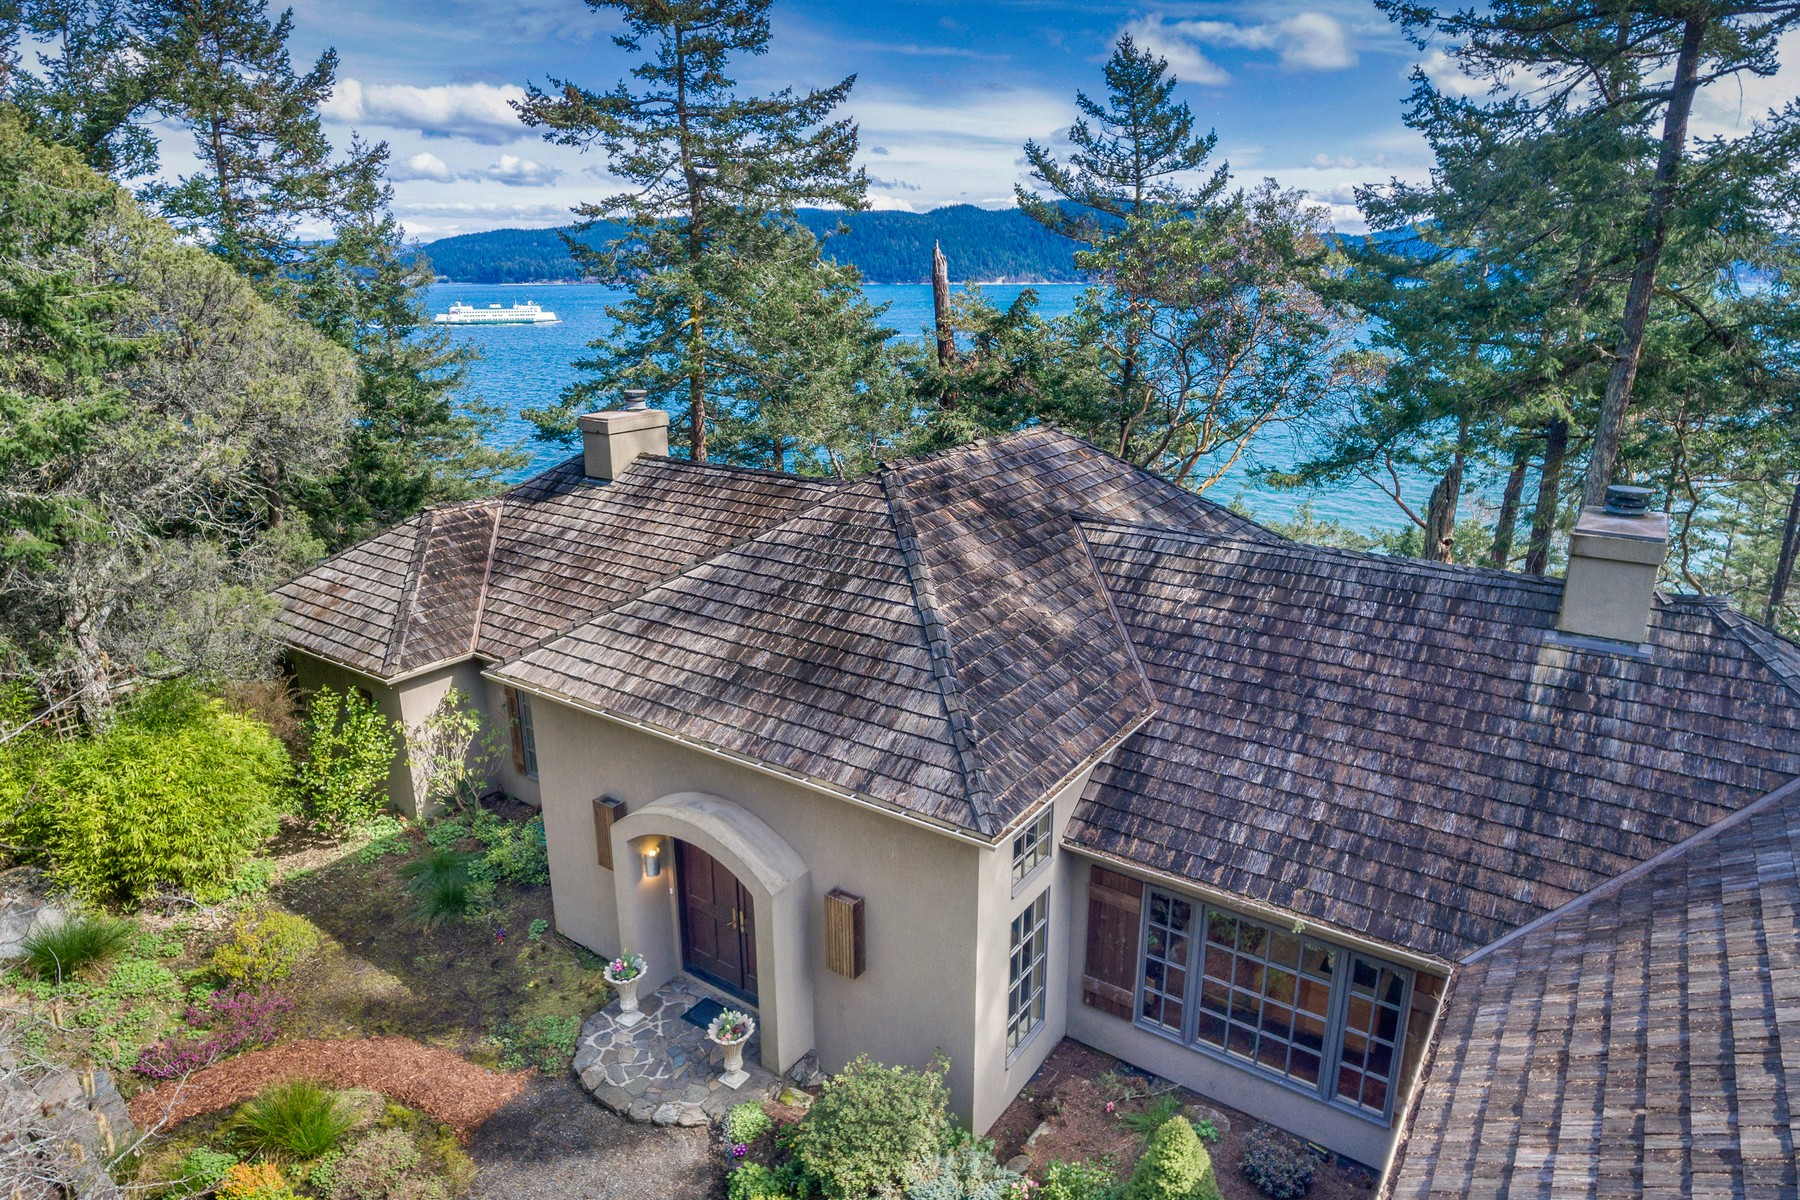 Casa Unifamiliar por un Venta en Beautiful Waterfront Home on Lopez Island 688 Shoreland Drive Lopez Island, Washington, 98261 Estados Unidos